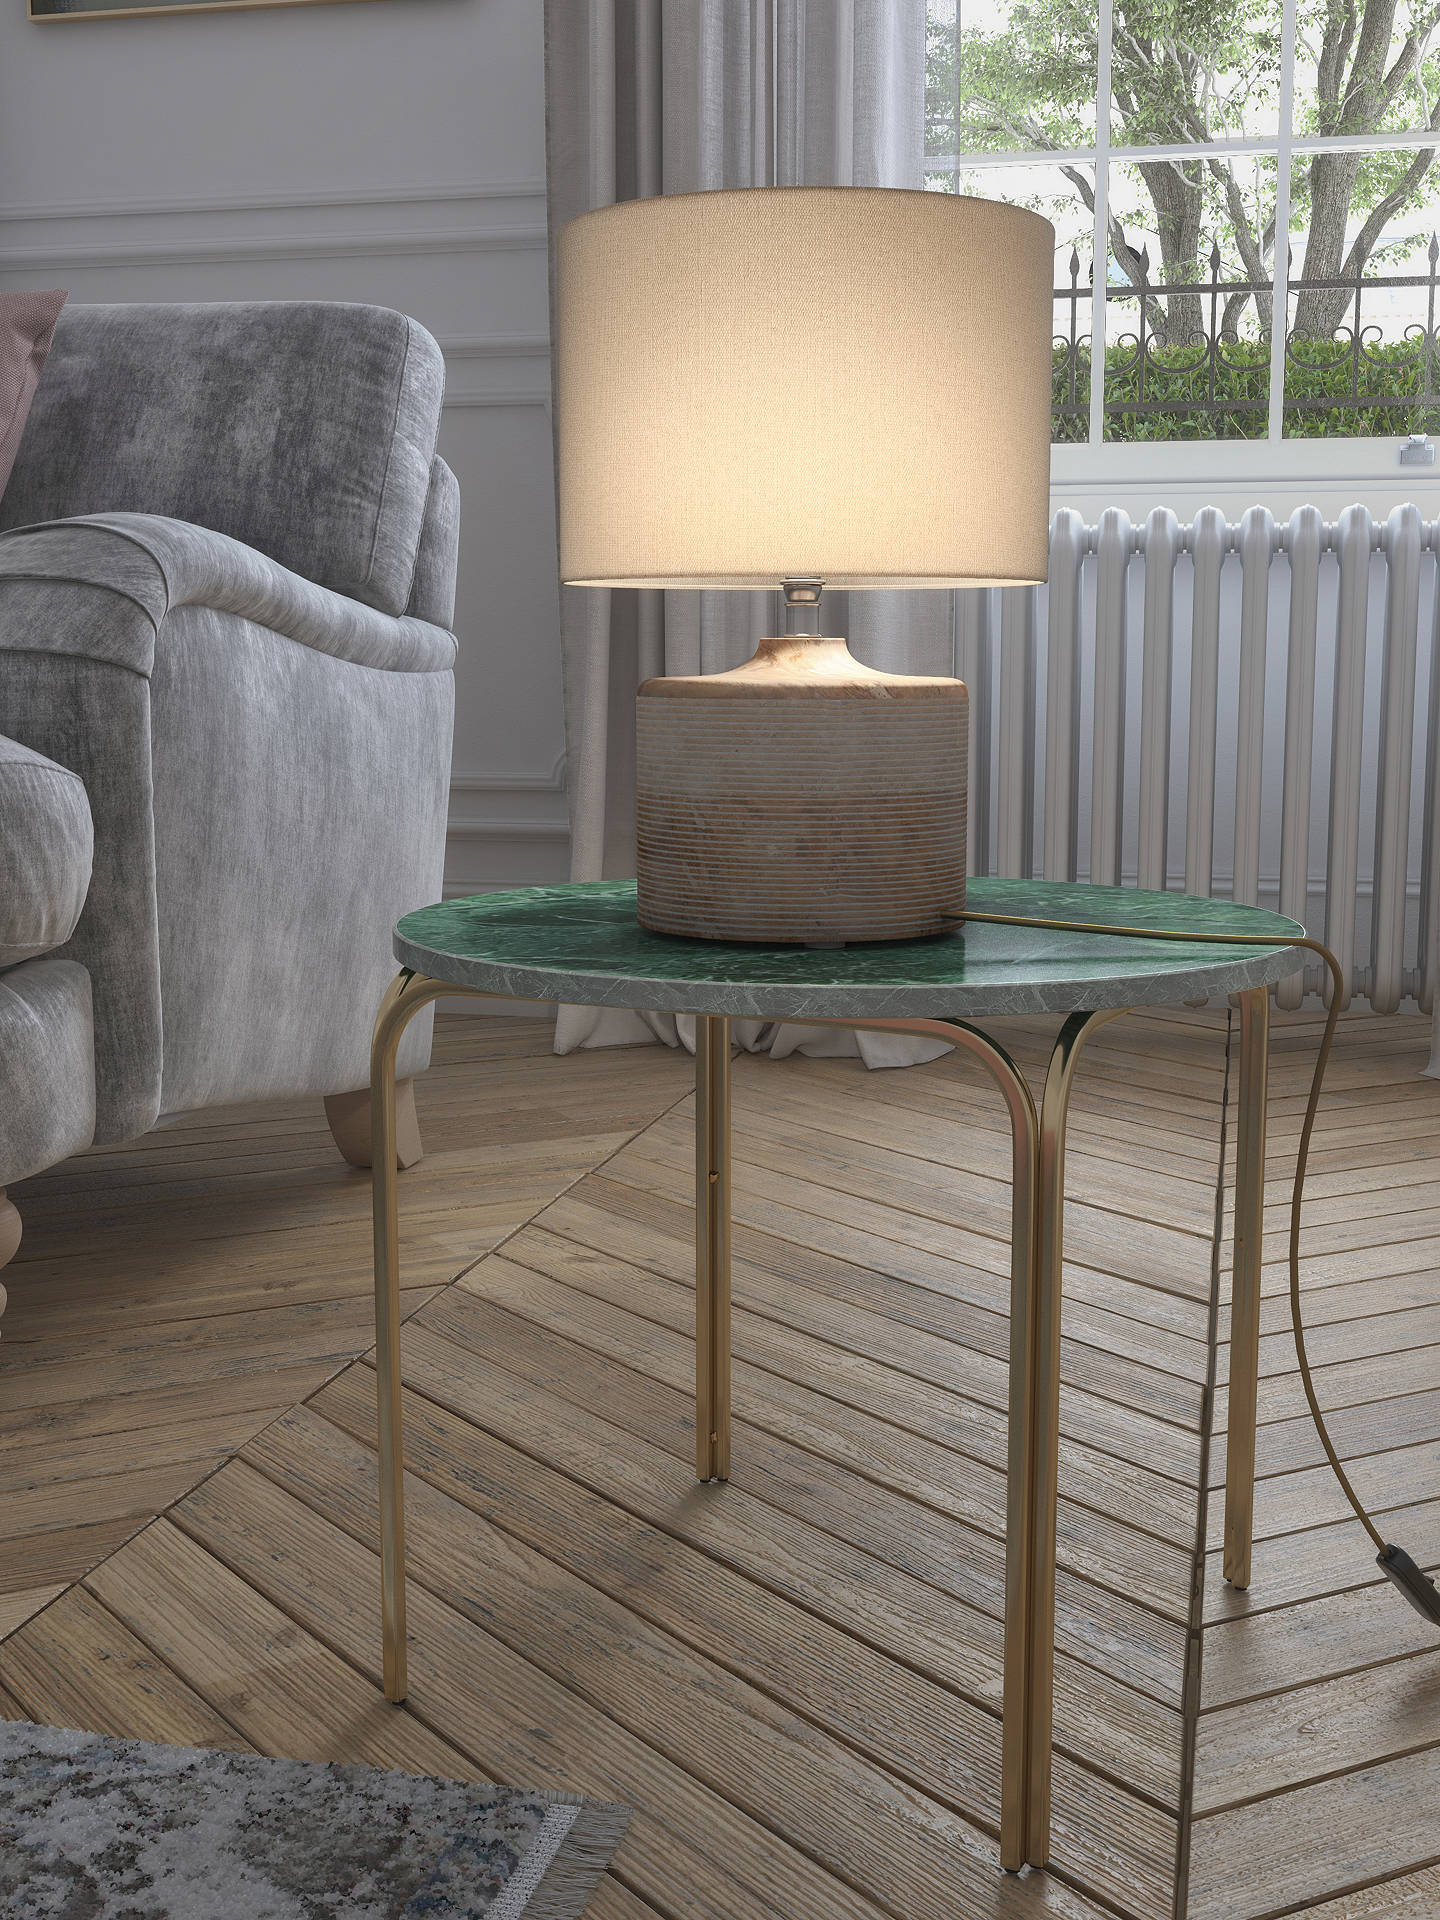 Buy John Lewis & Partners Ira Ribbed Wooden Table Lamp, Natural Online at johnlewis.com